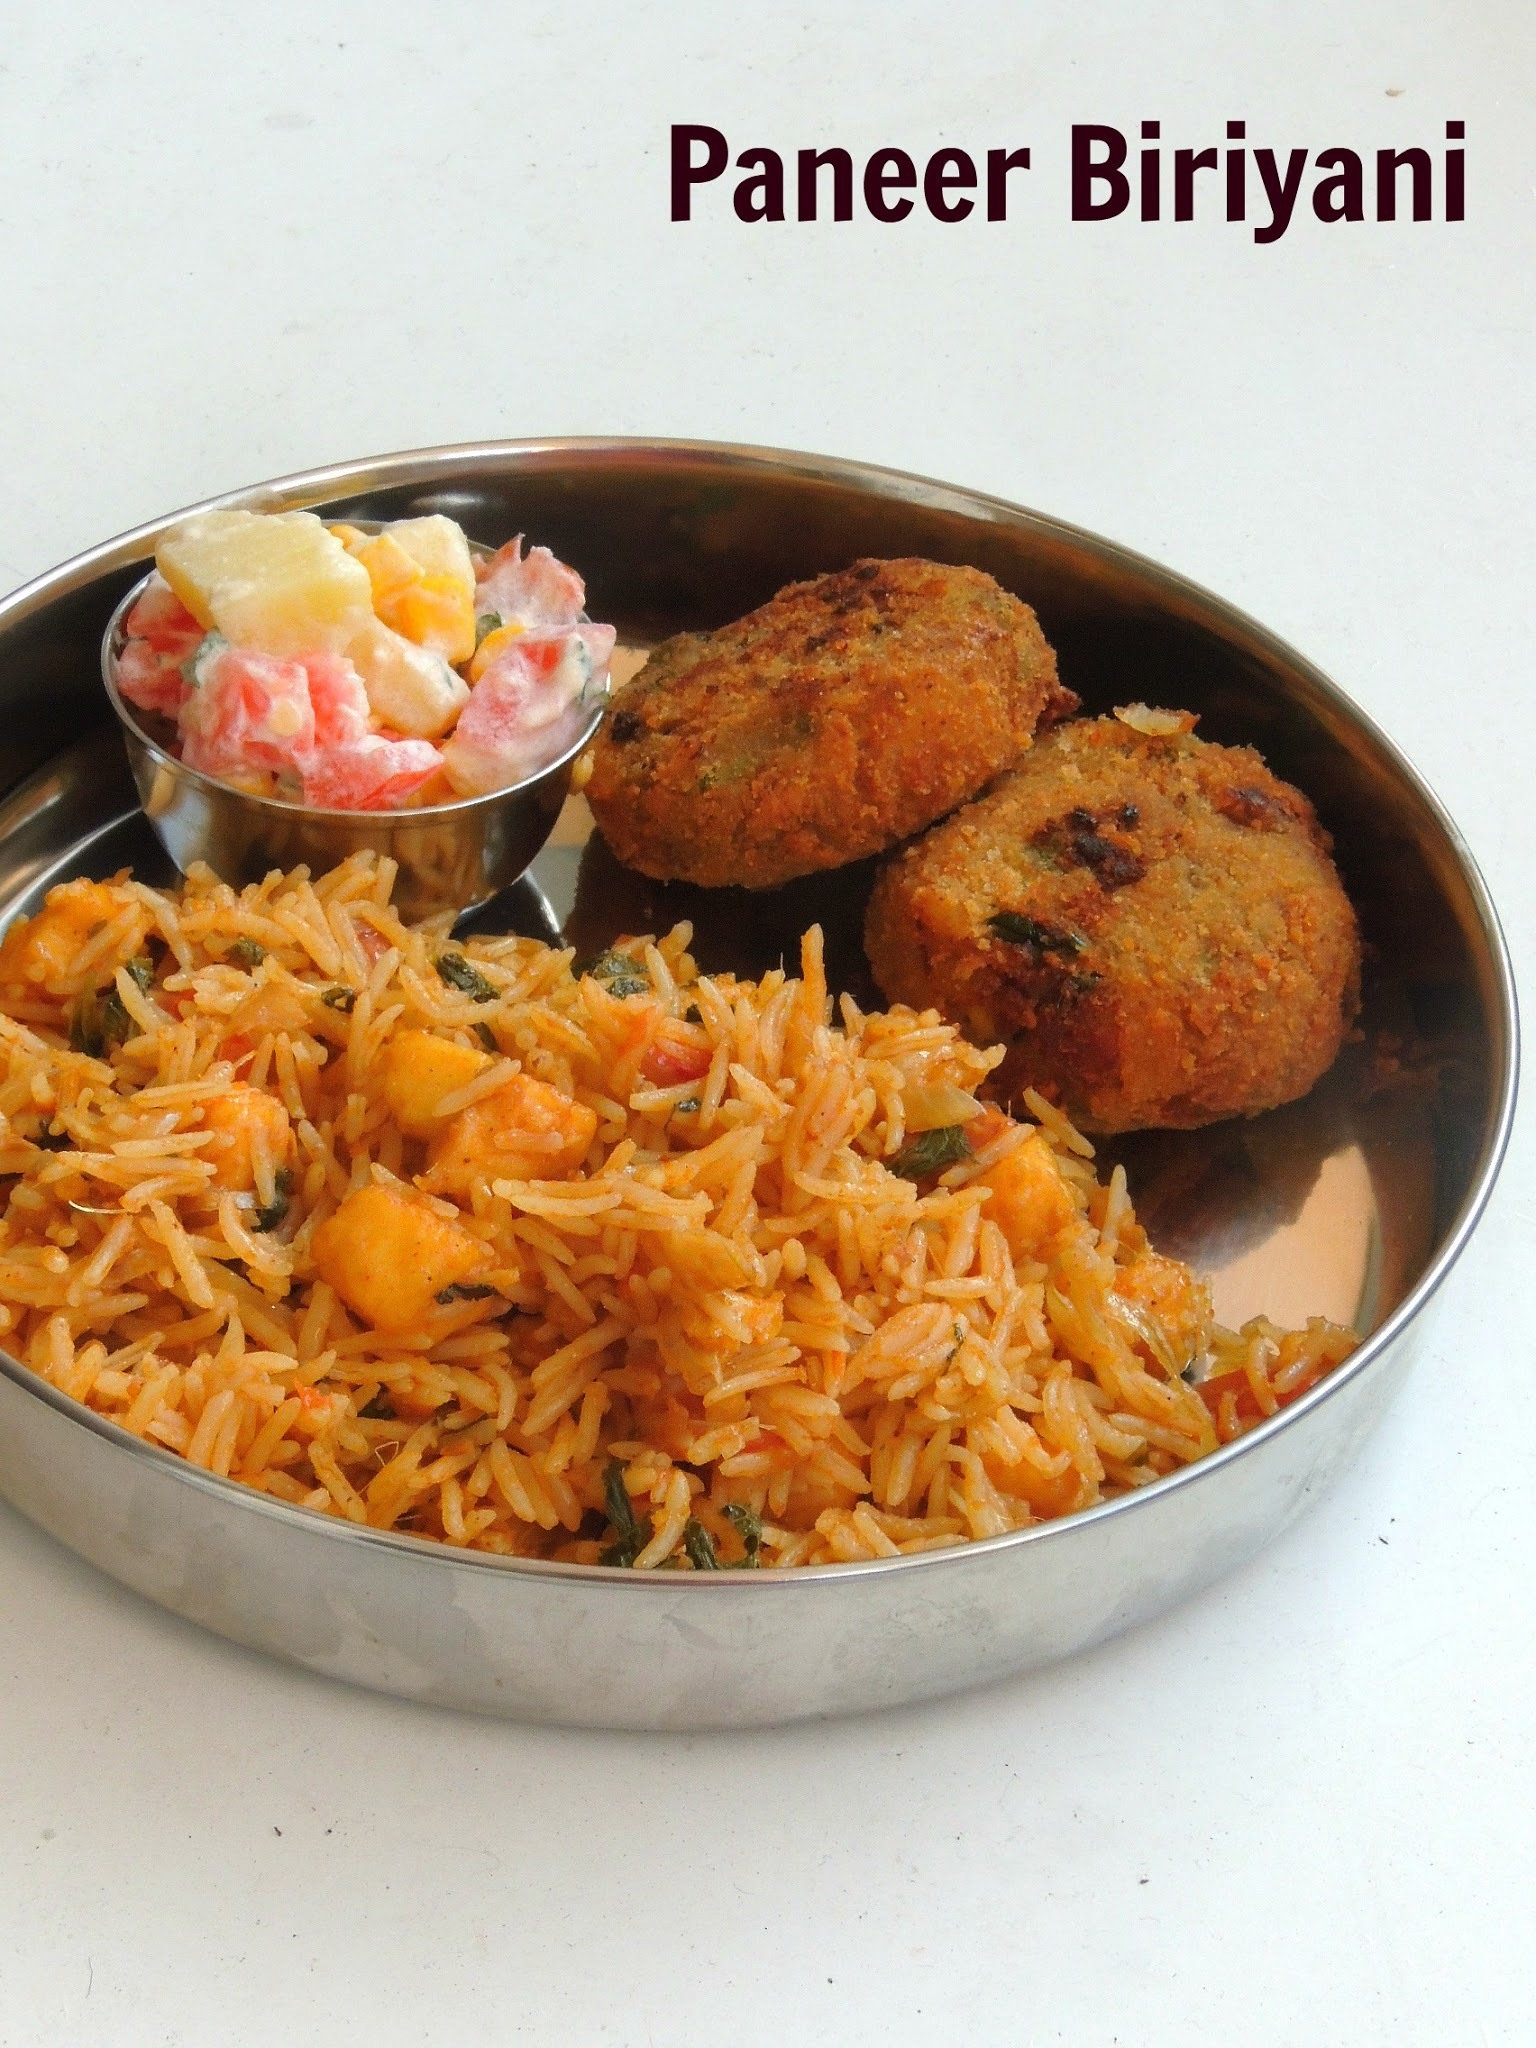 Paneer Biriyani / Paneer Biryani/Indian Cheese Briyani